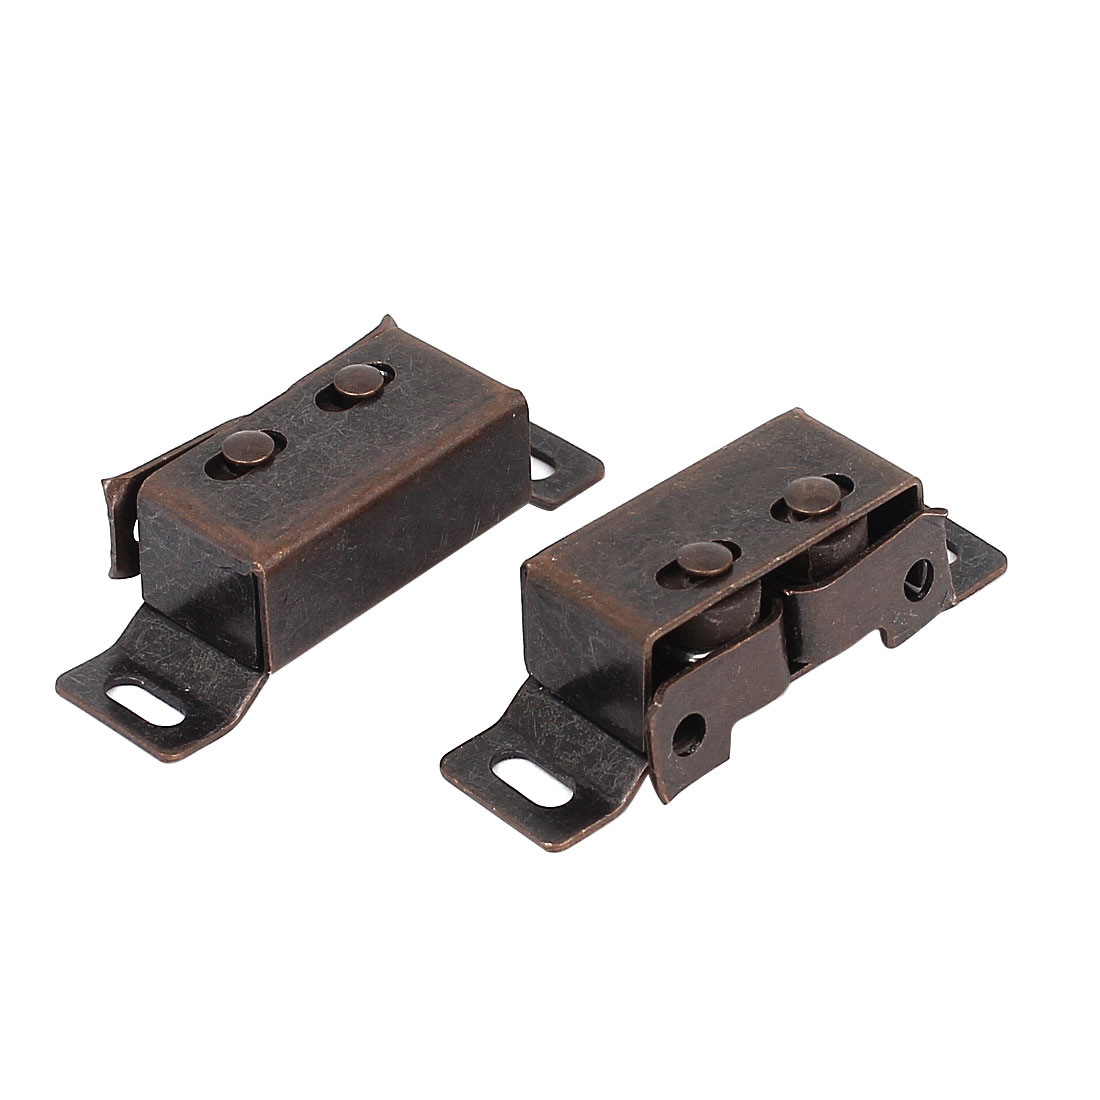 Cabinet Cupboard Closet Double Ball Roller Door Latch Catch Copper Tone 2pcs